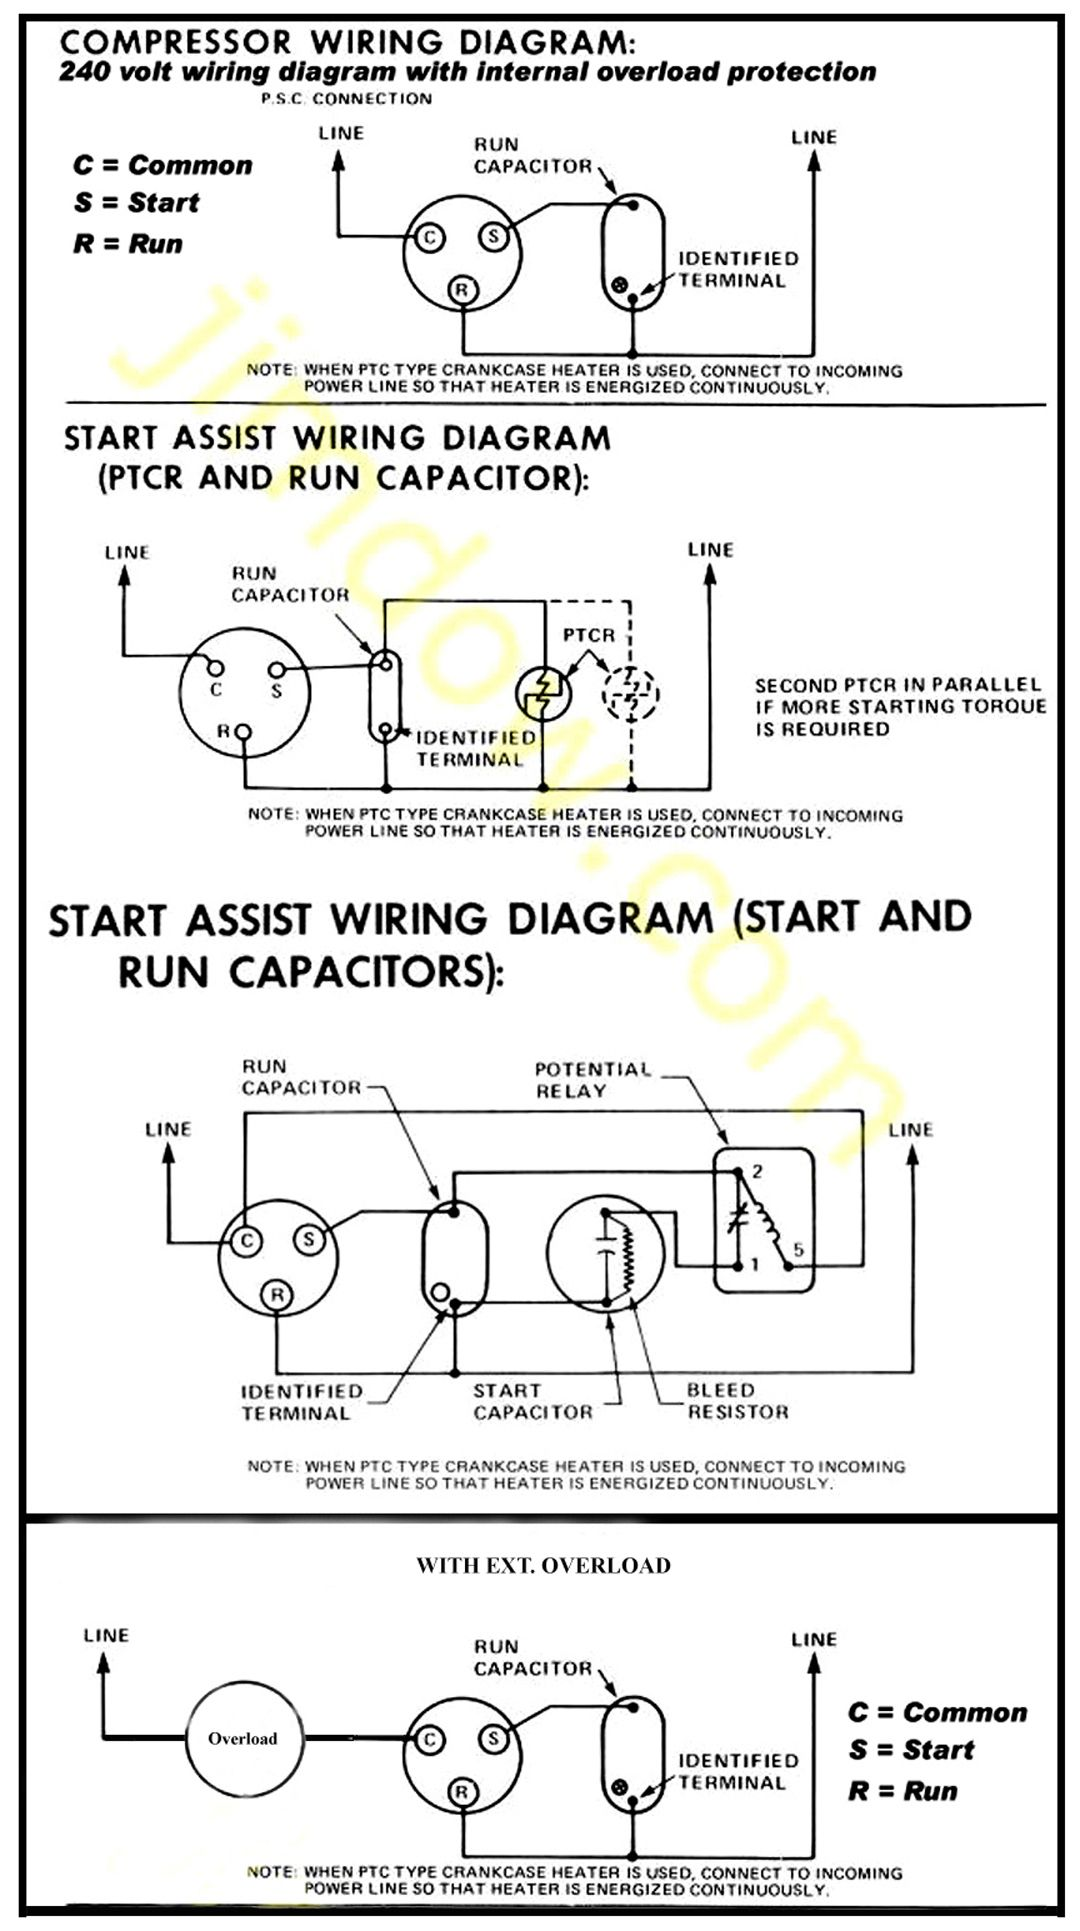 Wiring Diagram For 220 Volt Air Compressor - bookingritzcarlton.info |  Refrigeration and air conditioning, Hvac air conditioning, Air conditioner  compressor